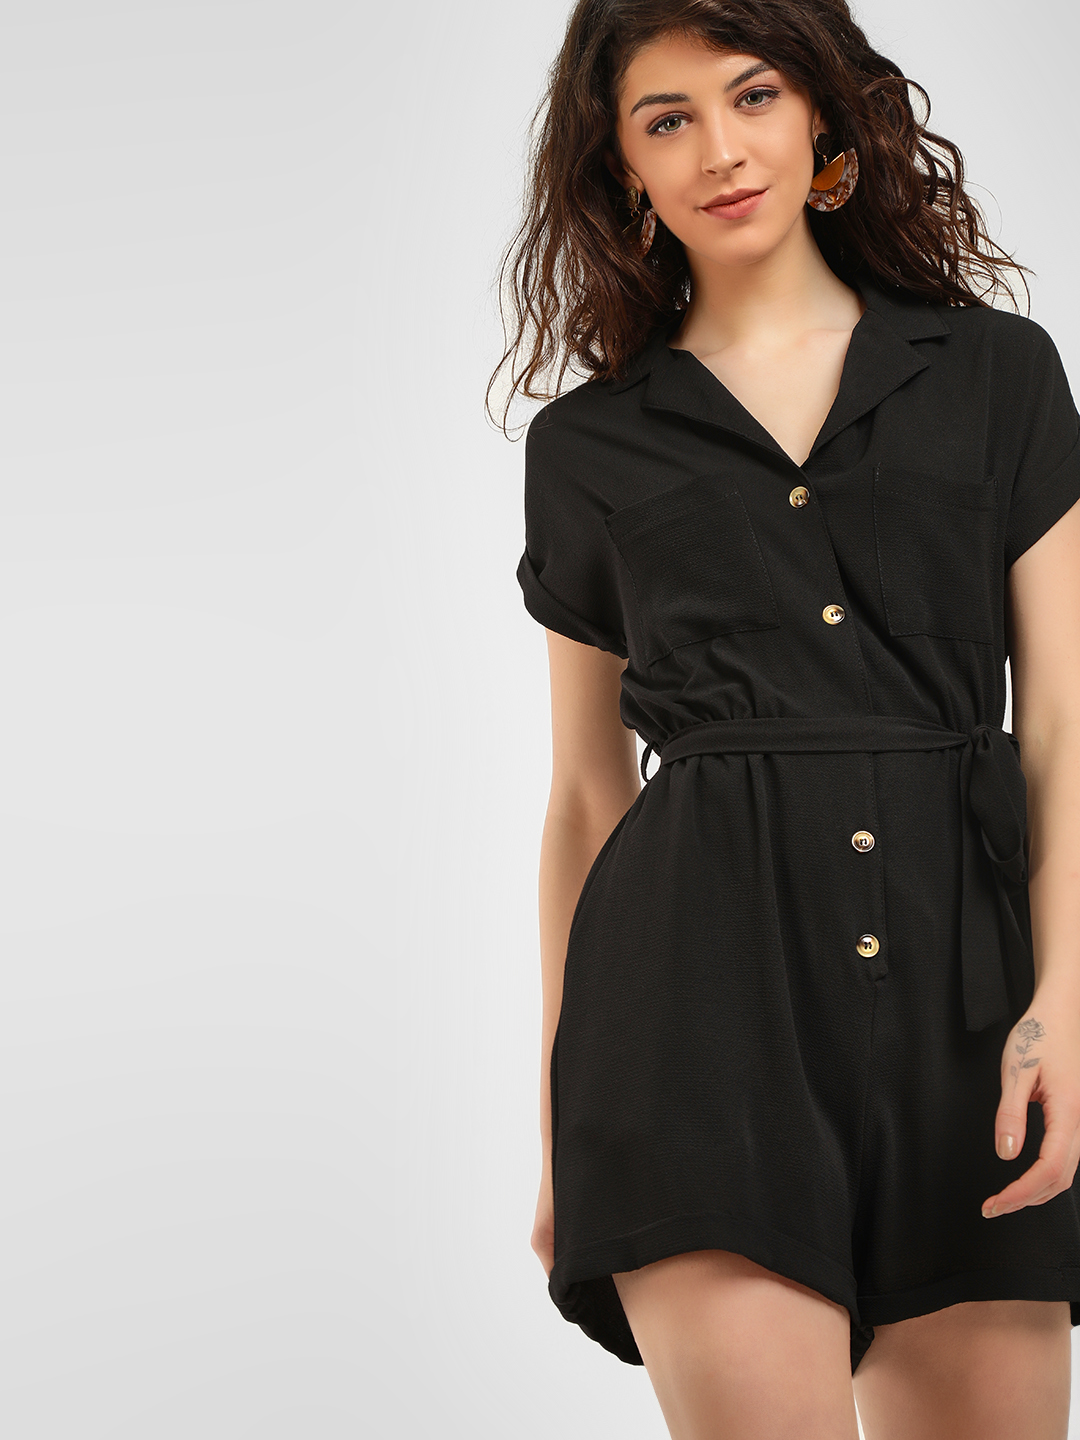 New Look Black Basic Revere Collared Playsuit 1